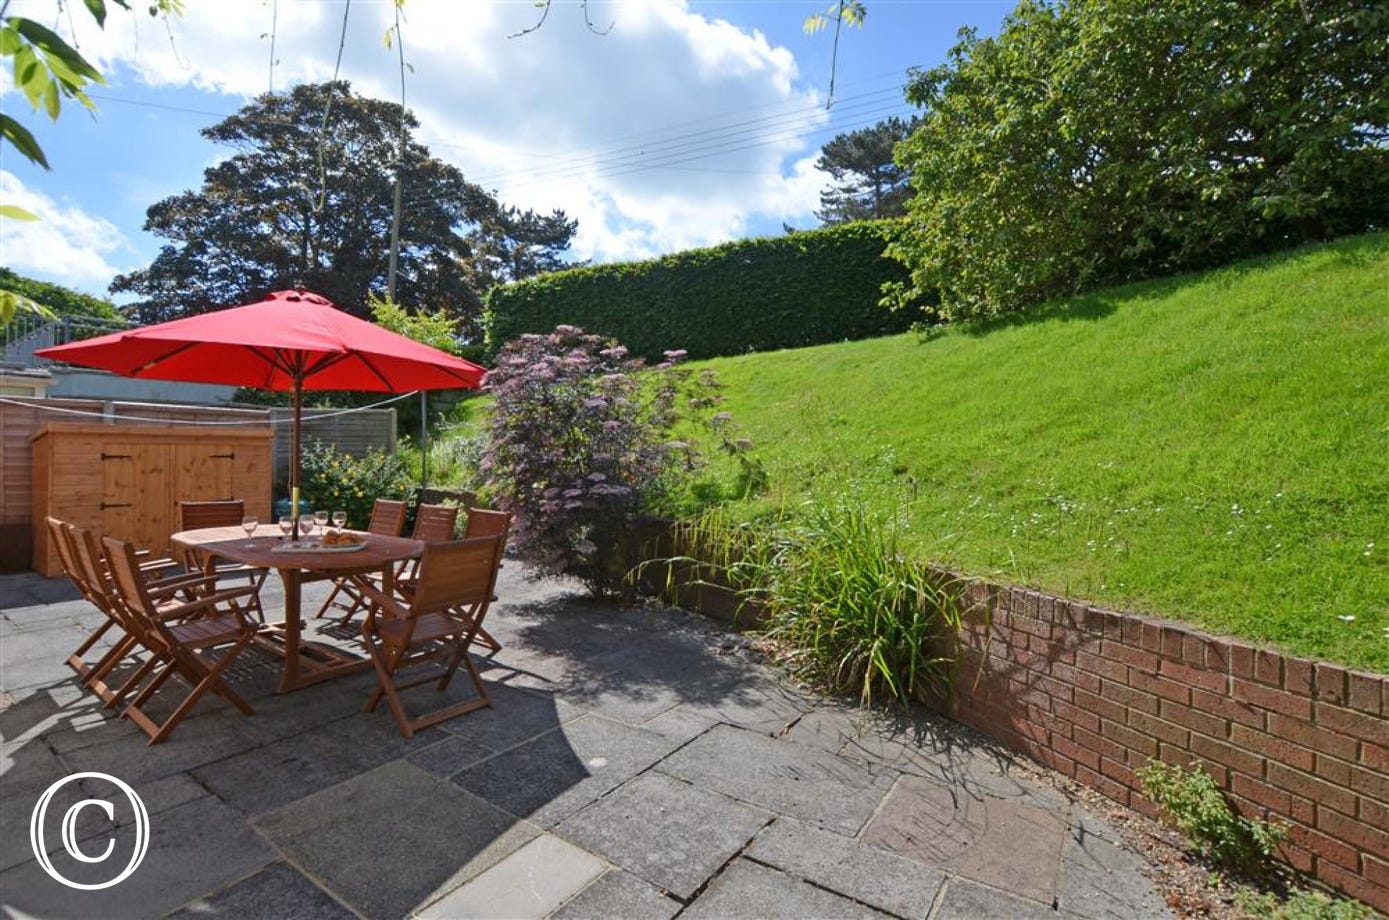 Enjoy all the flowers and the steeped lawns as you sit round this outside table chairs with red parasol.